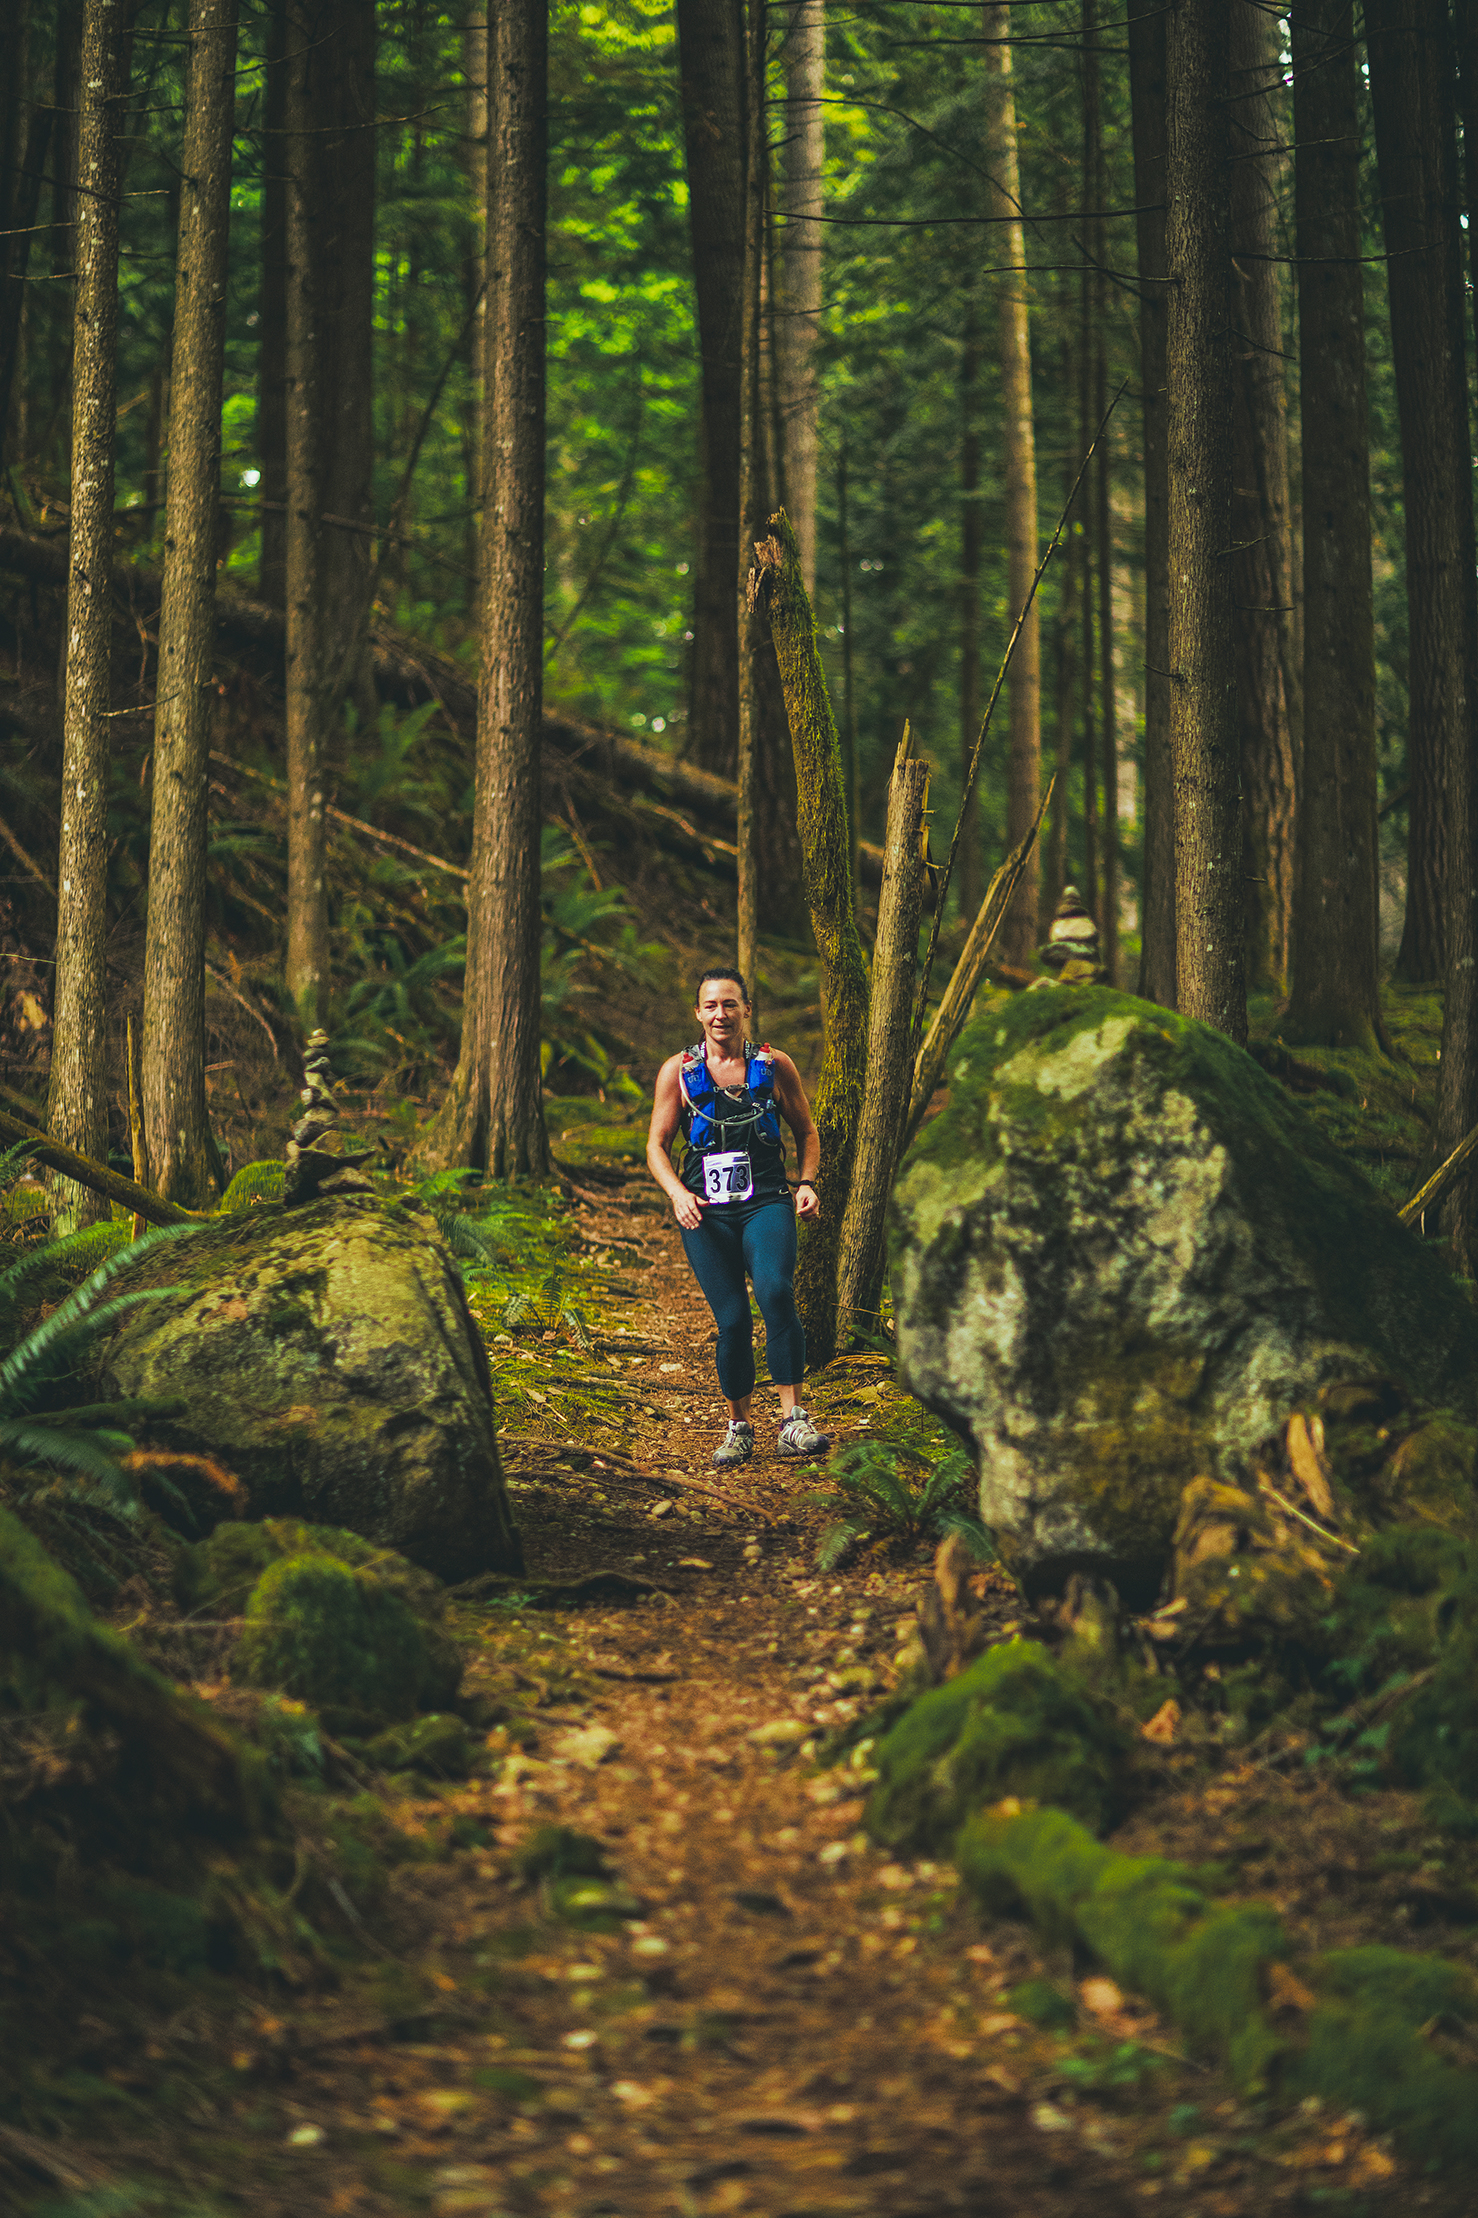 Fraser Valley Trail Races - Bear Mountain - IMG_2232 by Brice Ferre Studio - Vancouver Portrait Adventure and Athlete Photographer.jpg